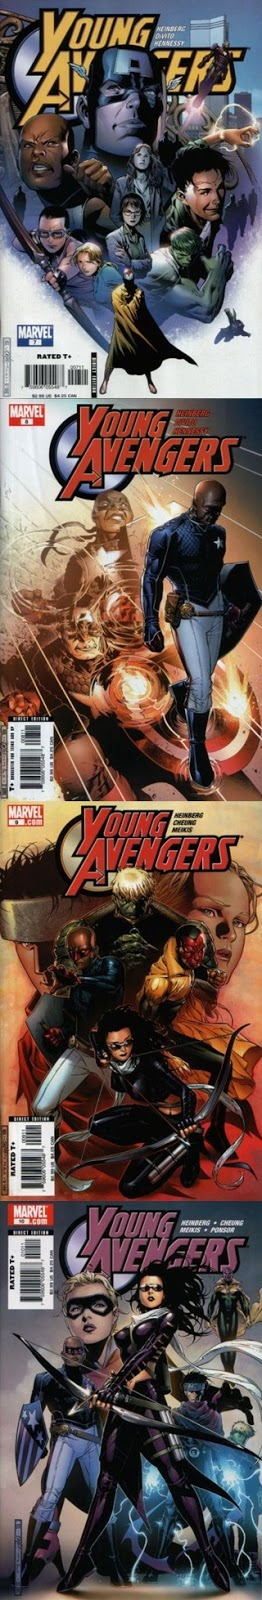 Young Avengers - Heinberg Cheung